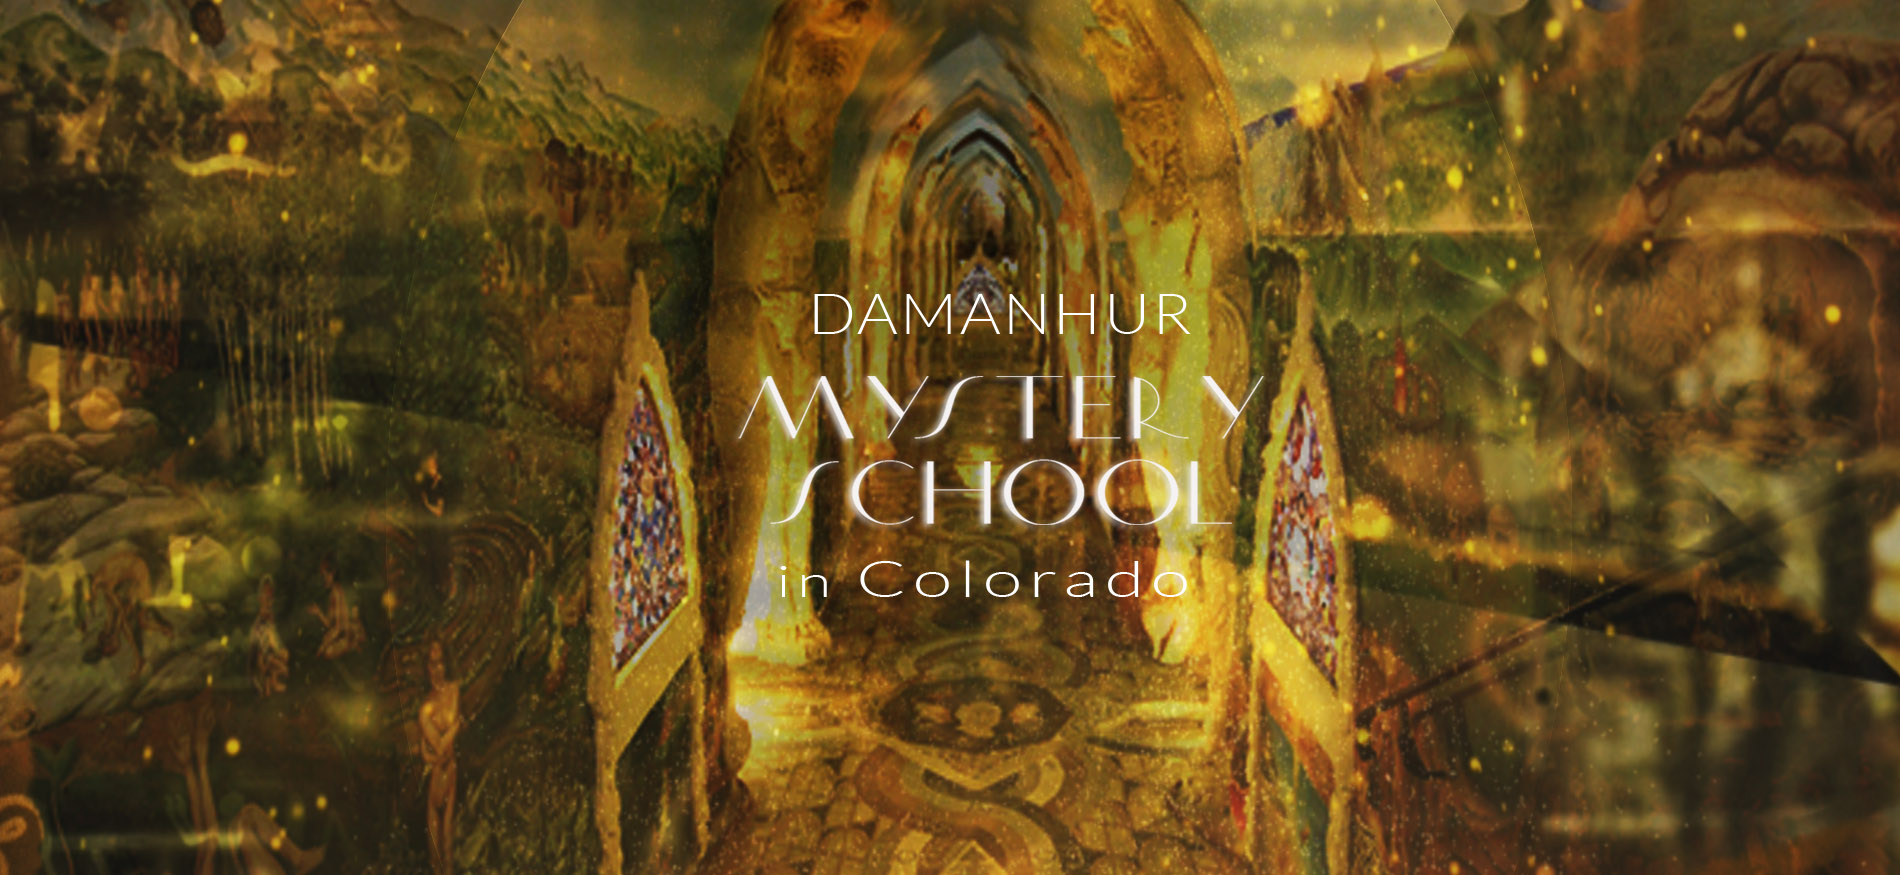 Damanhur Colorado Mystery School